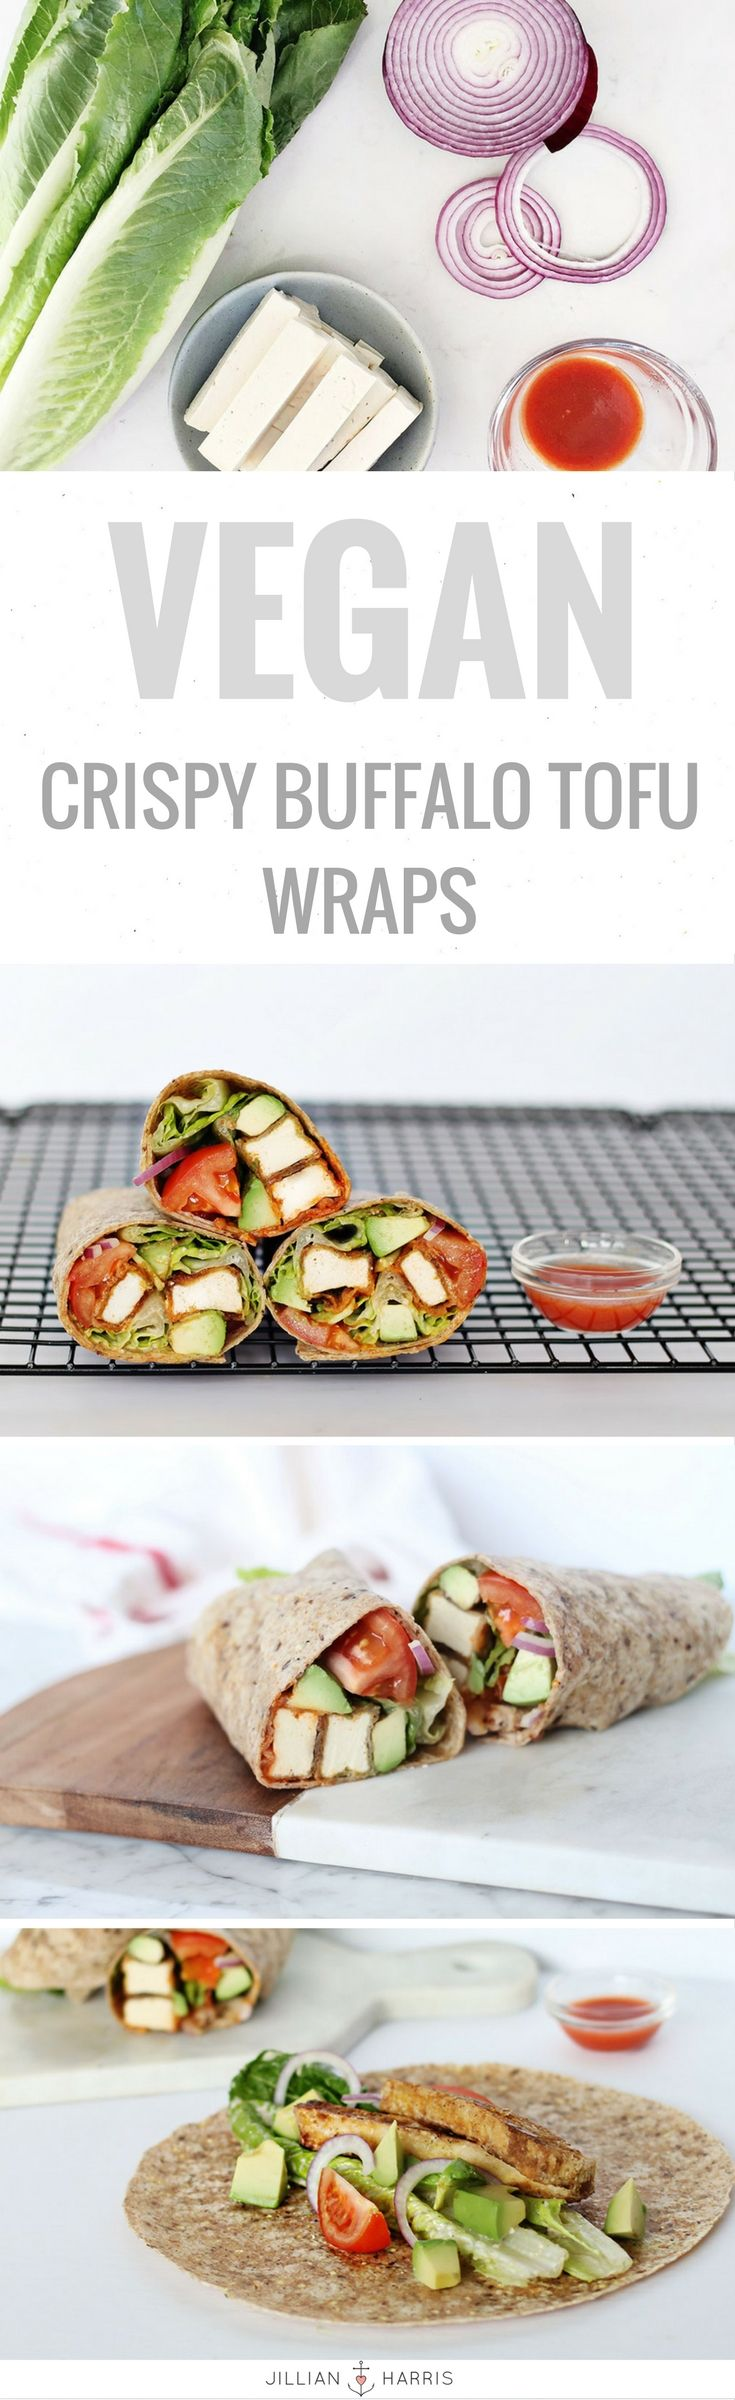 My recipe for my favourite Vegan Crispy Buffalo Tofu Wraps is now on the blog!